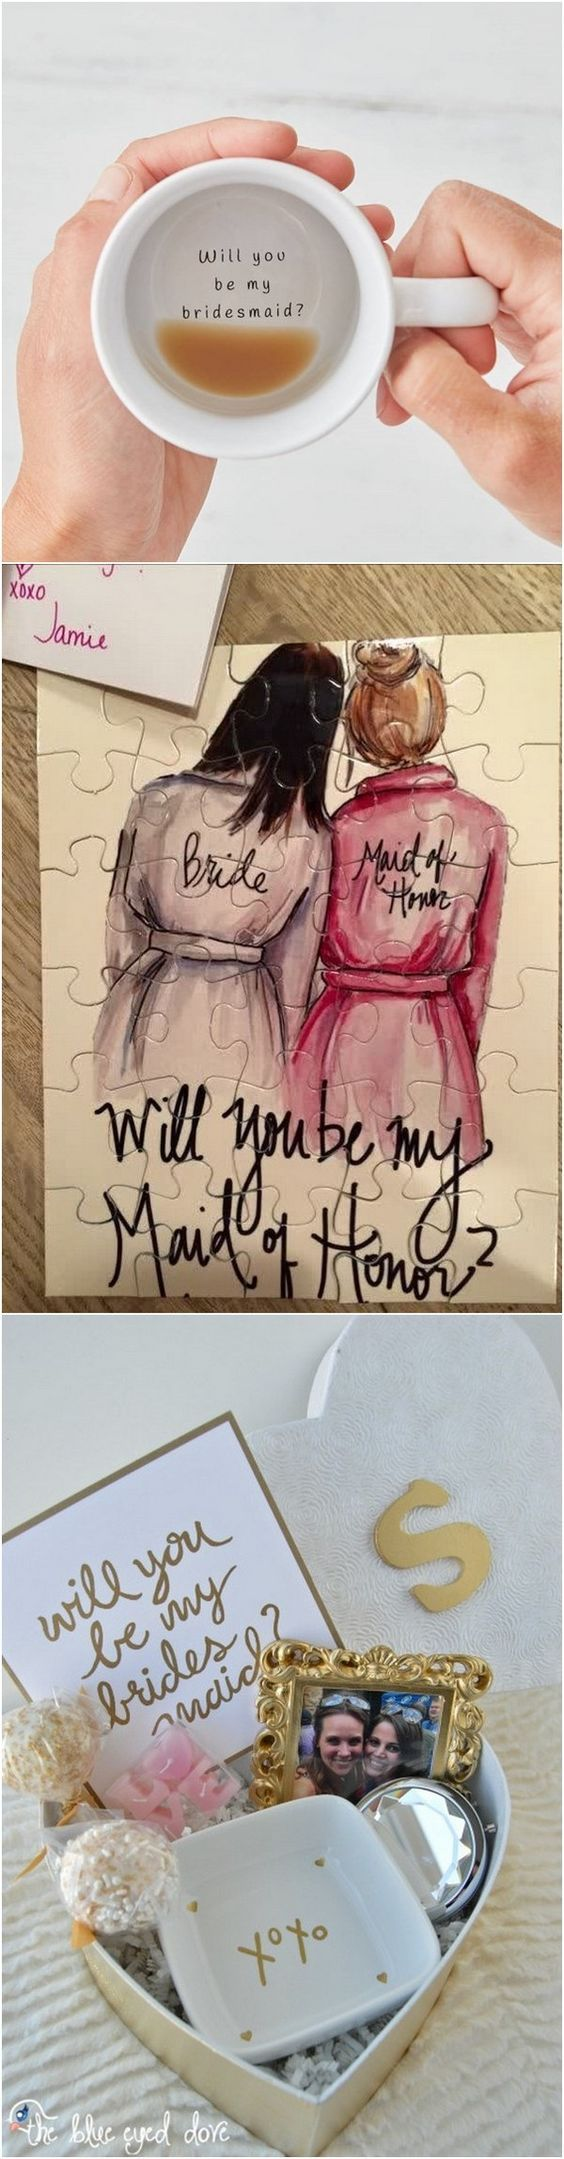 will you be my bridesmaid proposal gift ideas